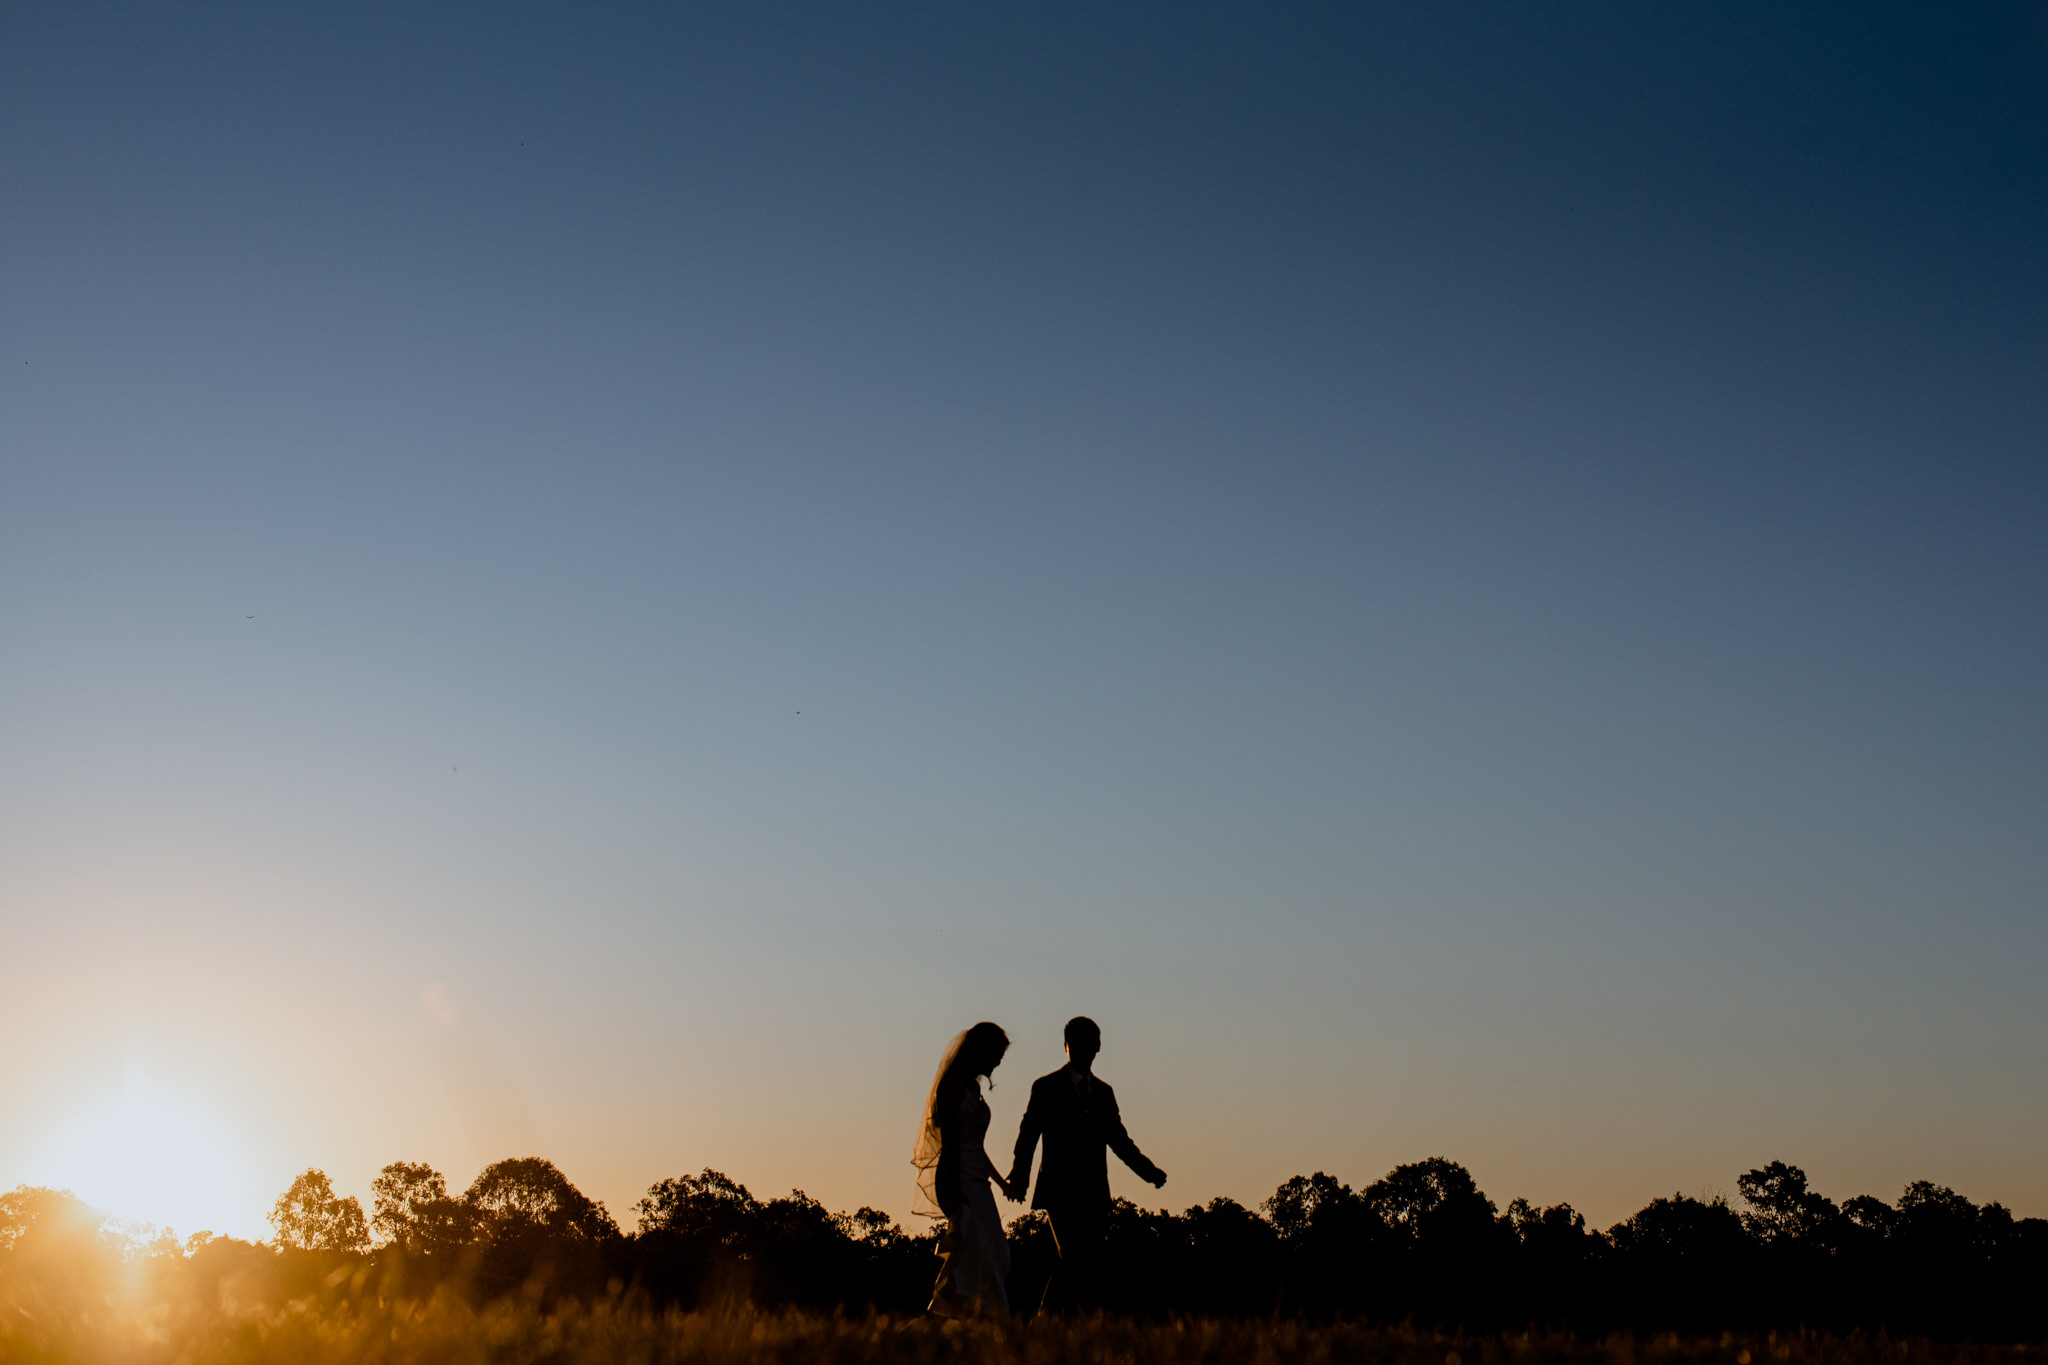 A silhouette of a bride and groom holding hands and walking in the afternoon, in front of a clear open blue sky